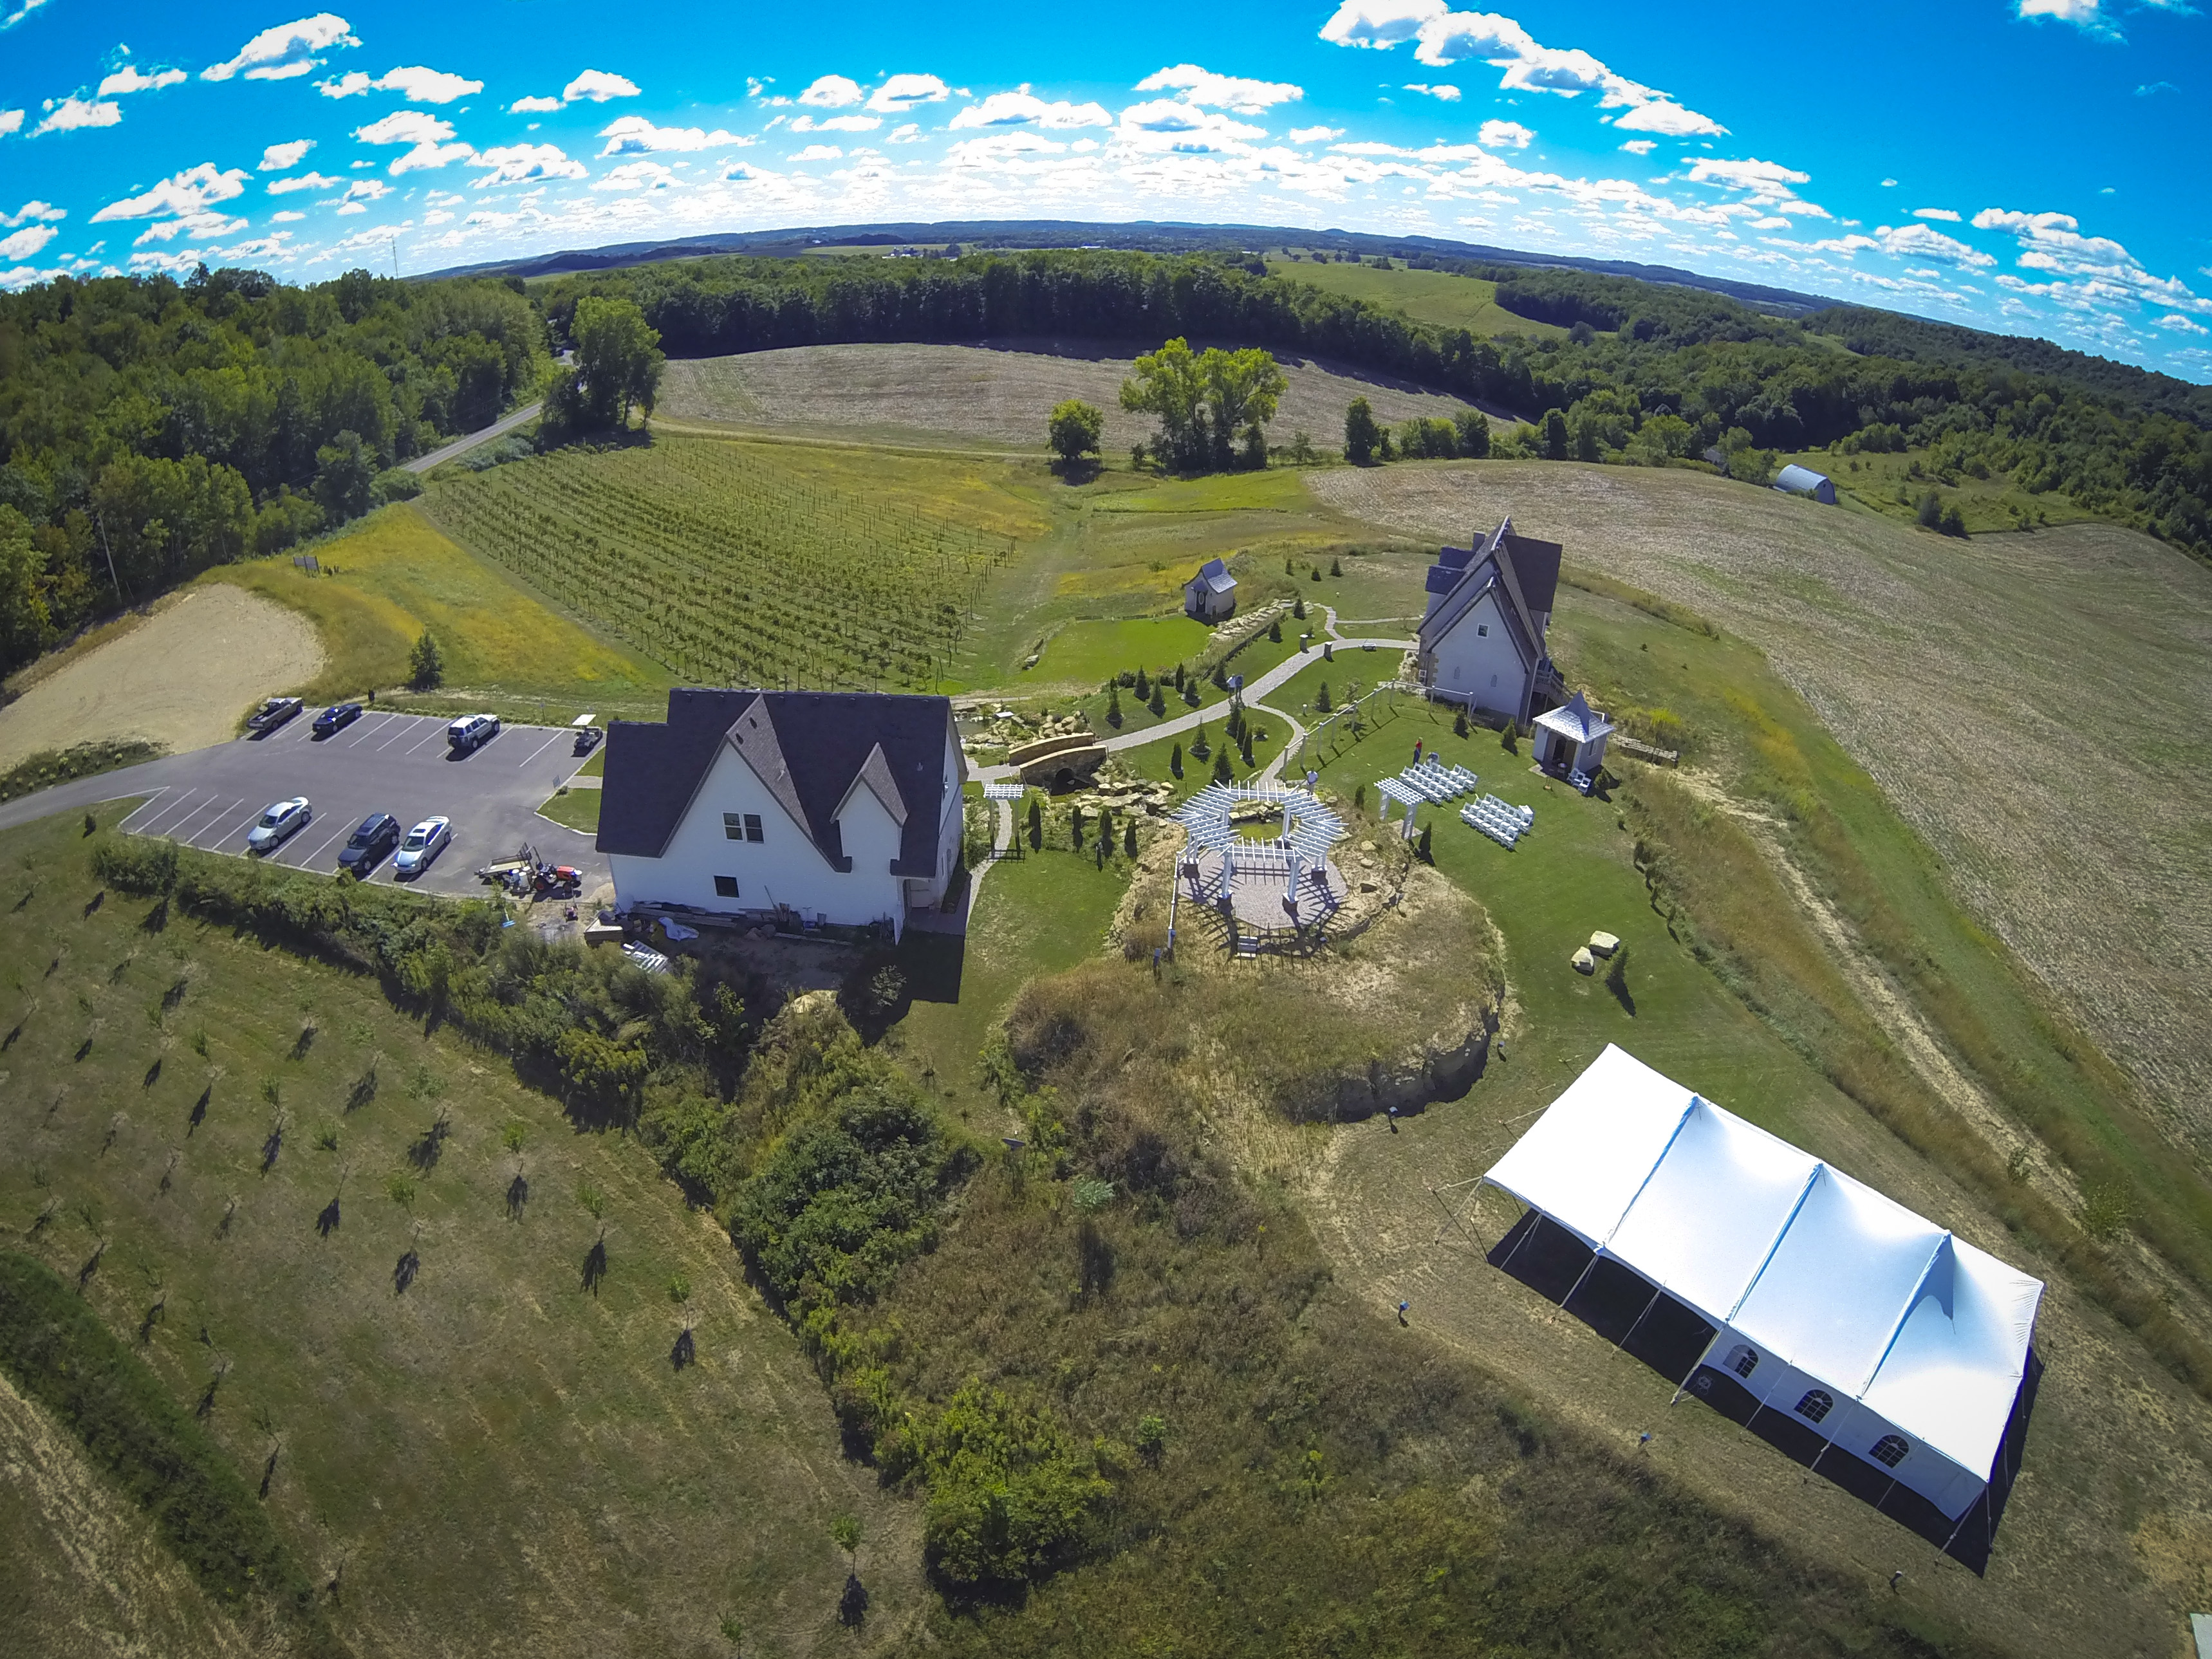 Menomonie (WI) United States  city photos : winery shoot city menomonie county or state wi country united states ...